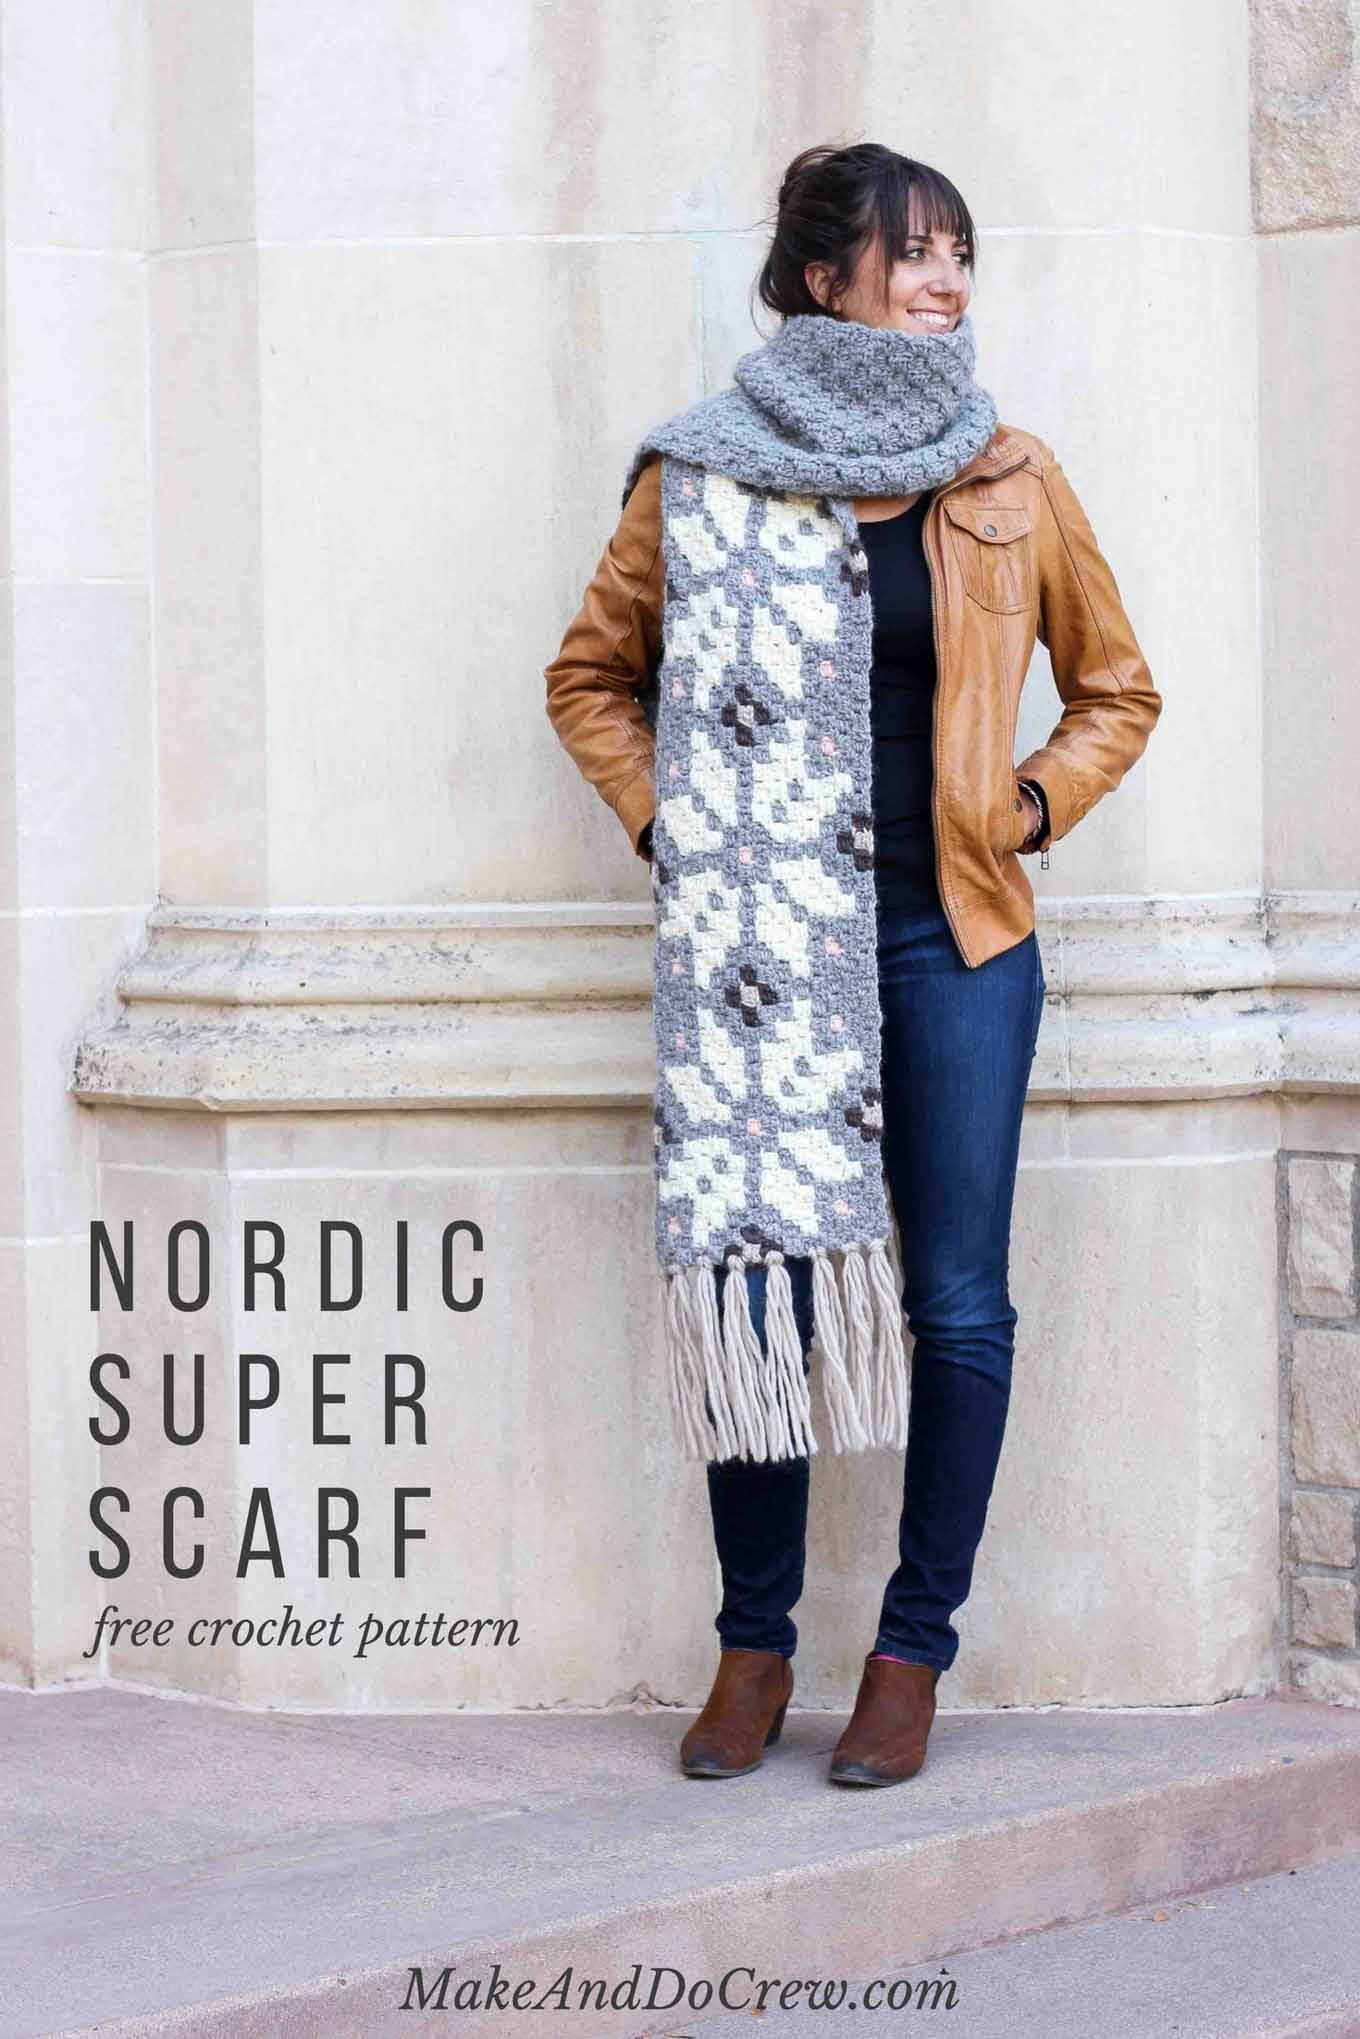 Whether you live in the North Pole or just want to jump on the super scarf trend, this nordic crochet super scarf pattern will keep you feeling warm, but lookin' hot all winter long. Click to download the free c2c graph pattern that looks like intarsia crochet.